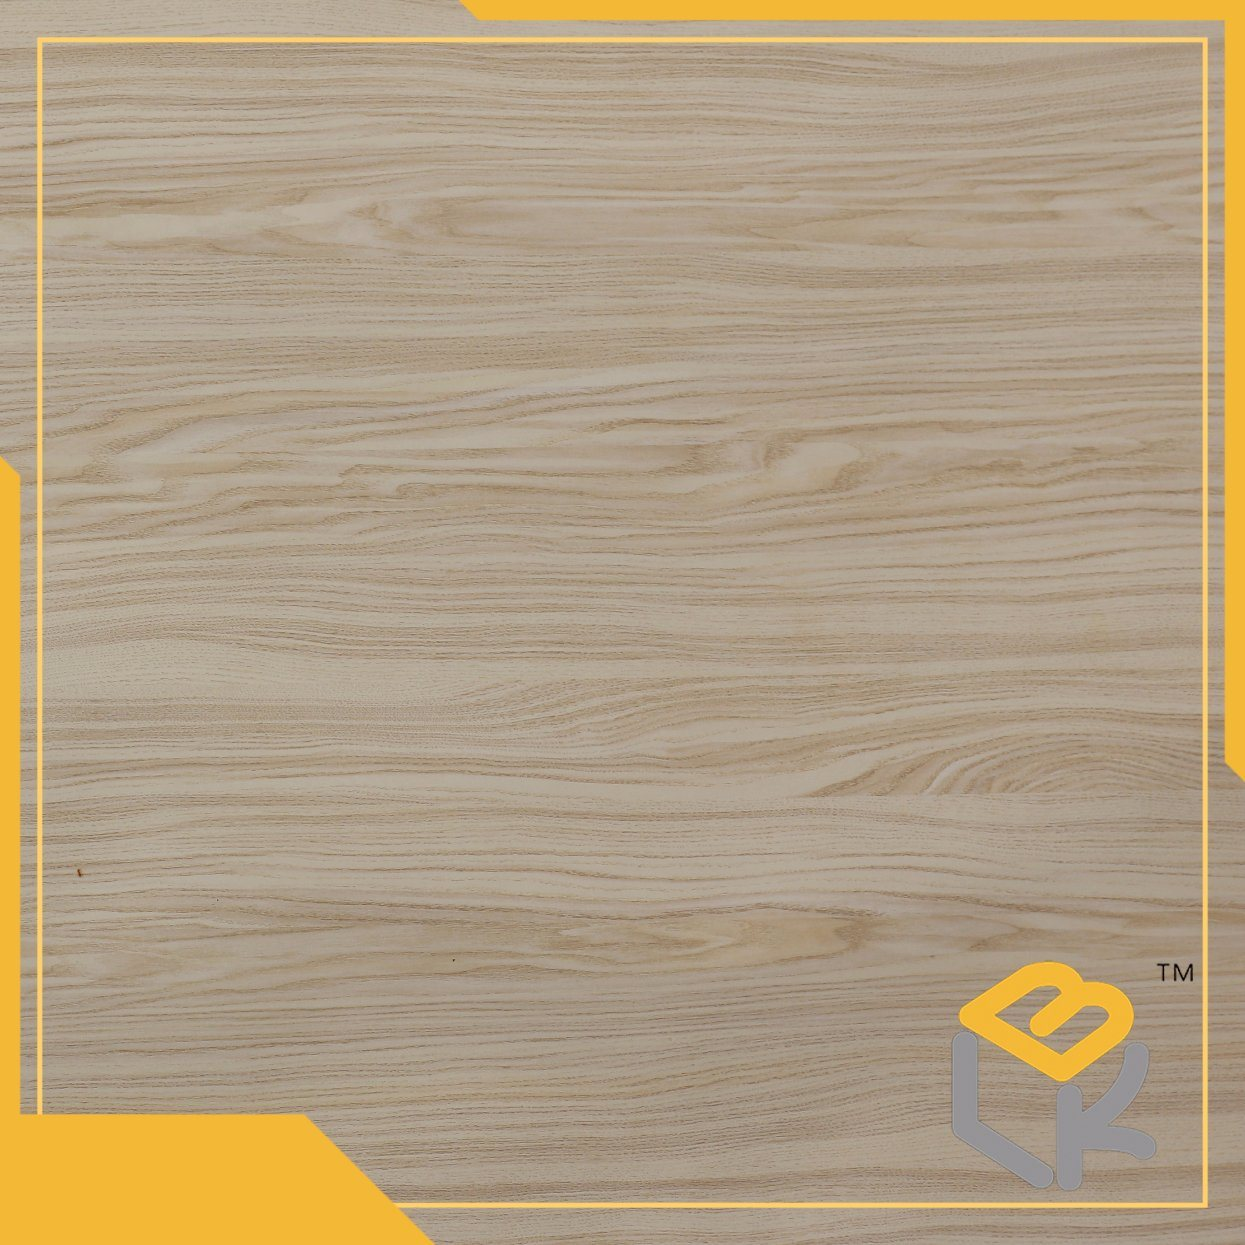 woods used for furniture. Wood Grain Design Decorative Melamine Impregnated Paper 70g 80g Used For Furniture, Floor, Kitchen Surface From China - Laminated Paper, HPL Panel Woods Furniture